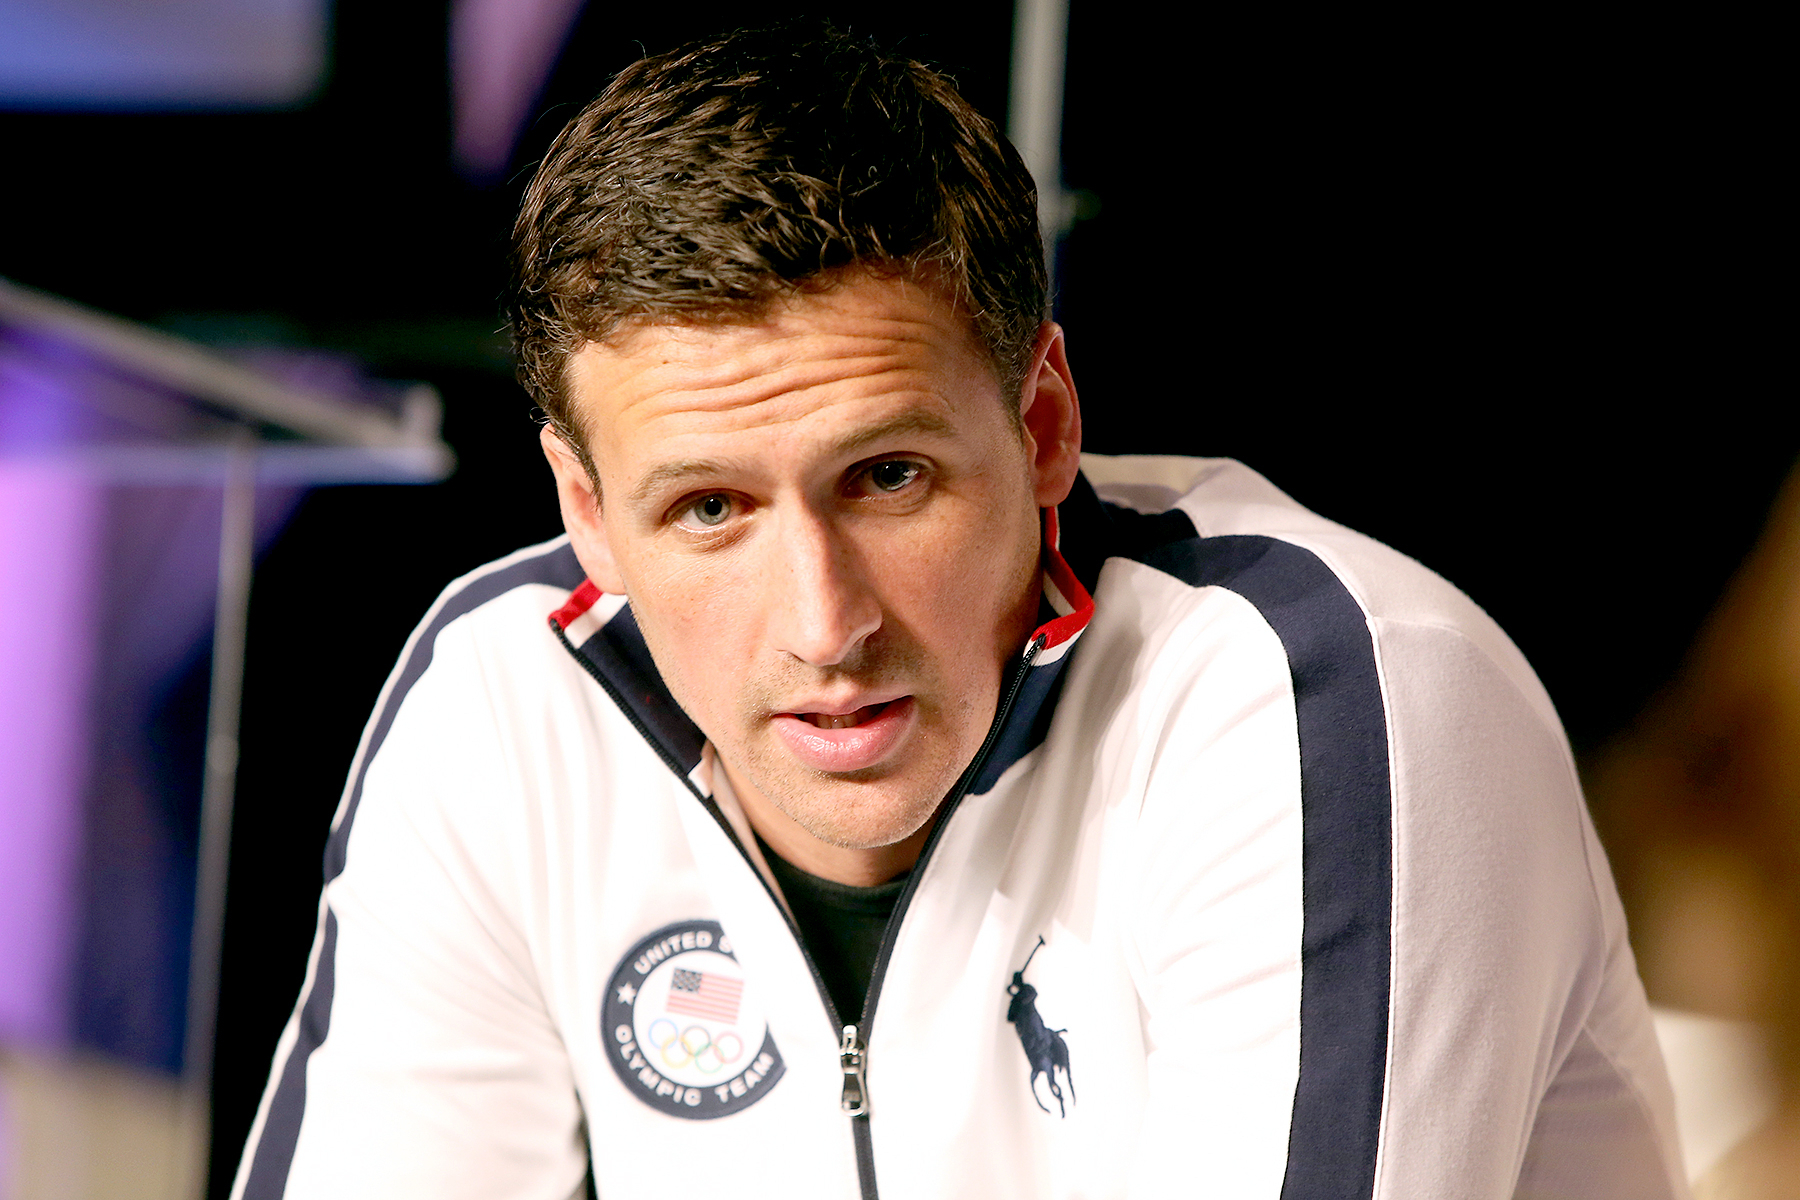 Ryan Lochte addresses the media at the USOC Olympic Meida Summit at The Beverly Hilton Hotel on March 7, 2016 in Beverly Hills, California.